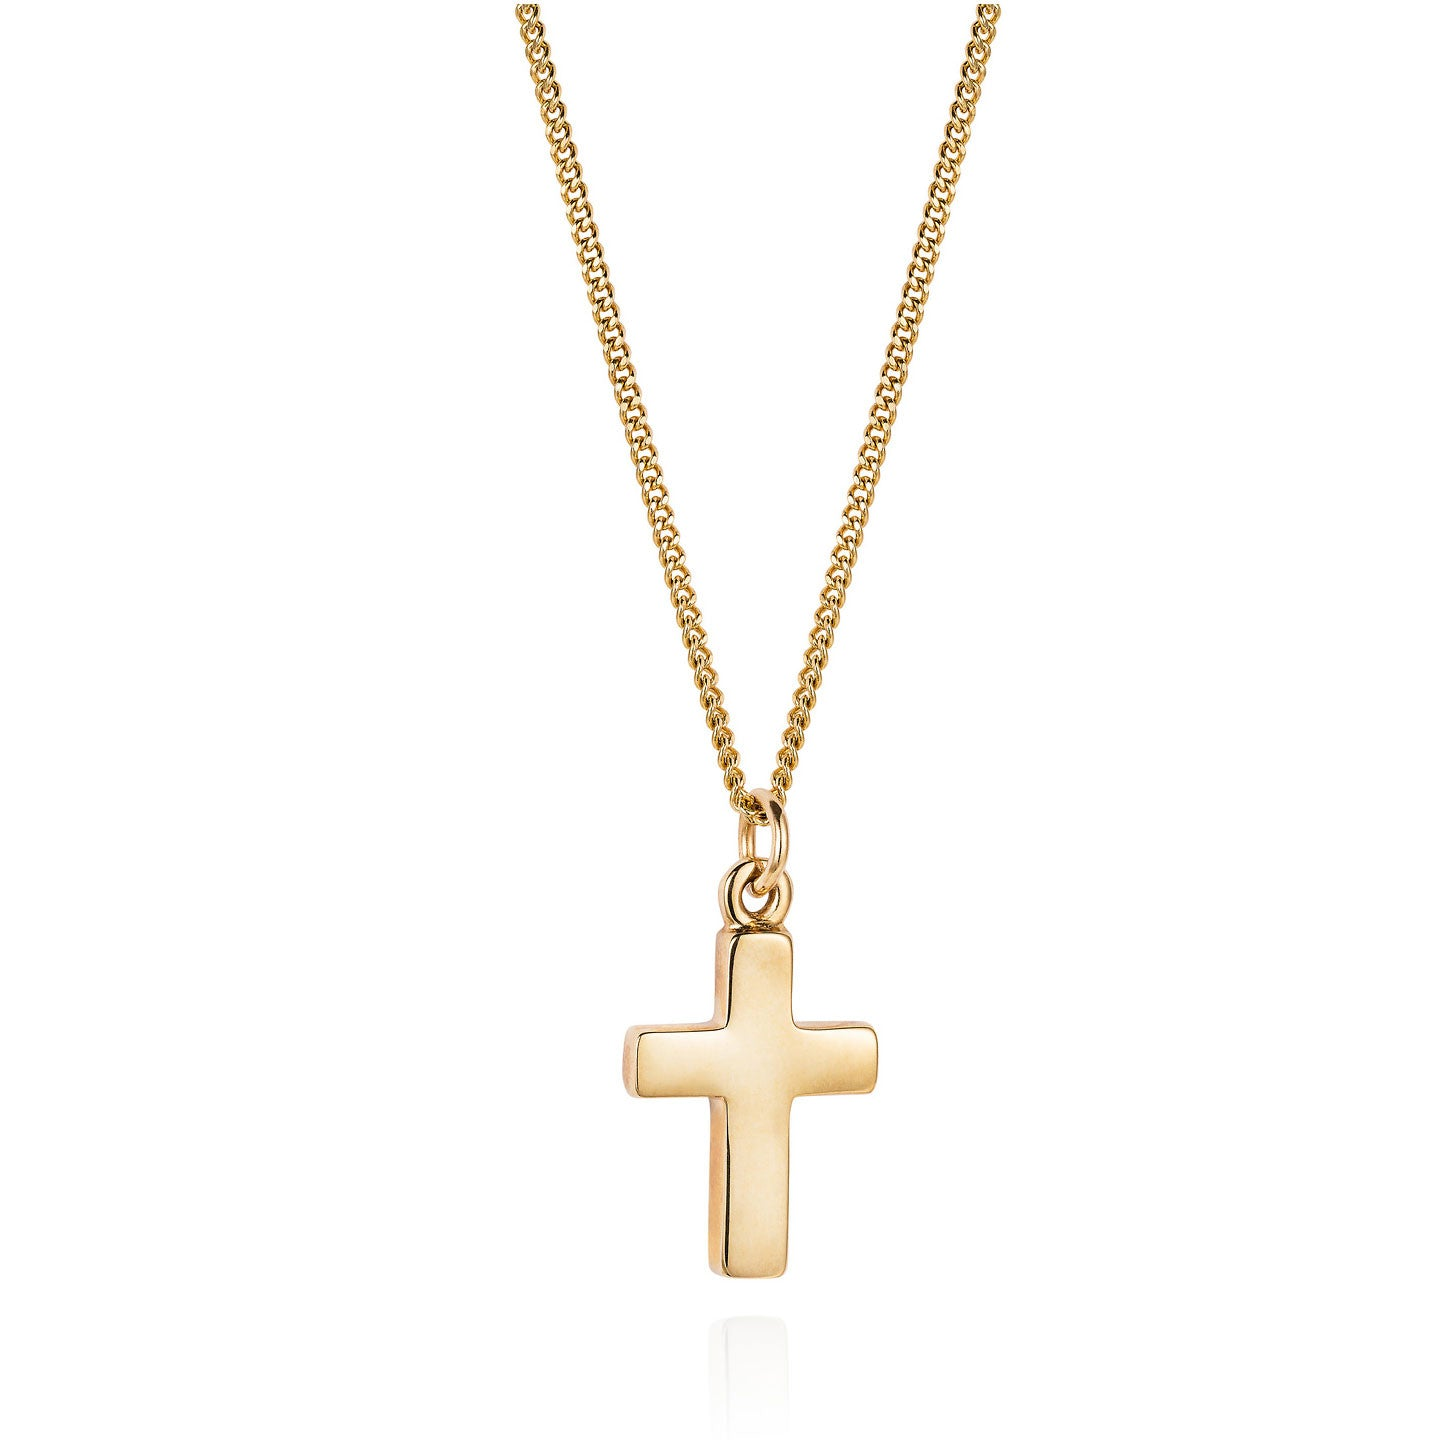 Gold cross necklace joy everley fine jewellers london gold cross necklace mozeypictures Image collections